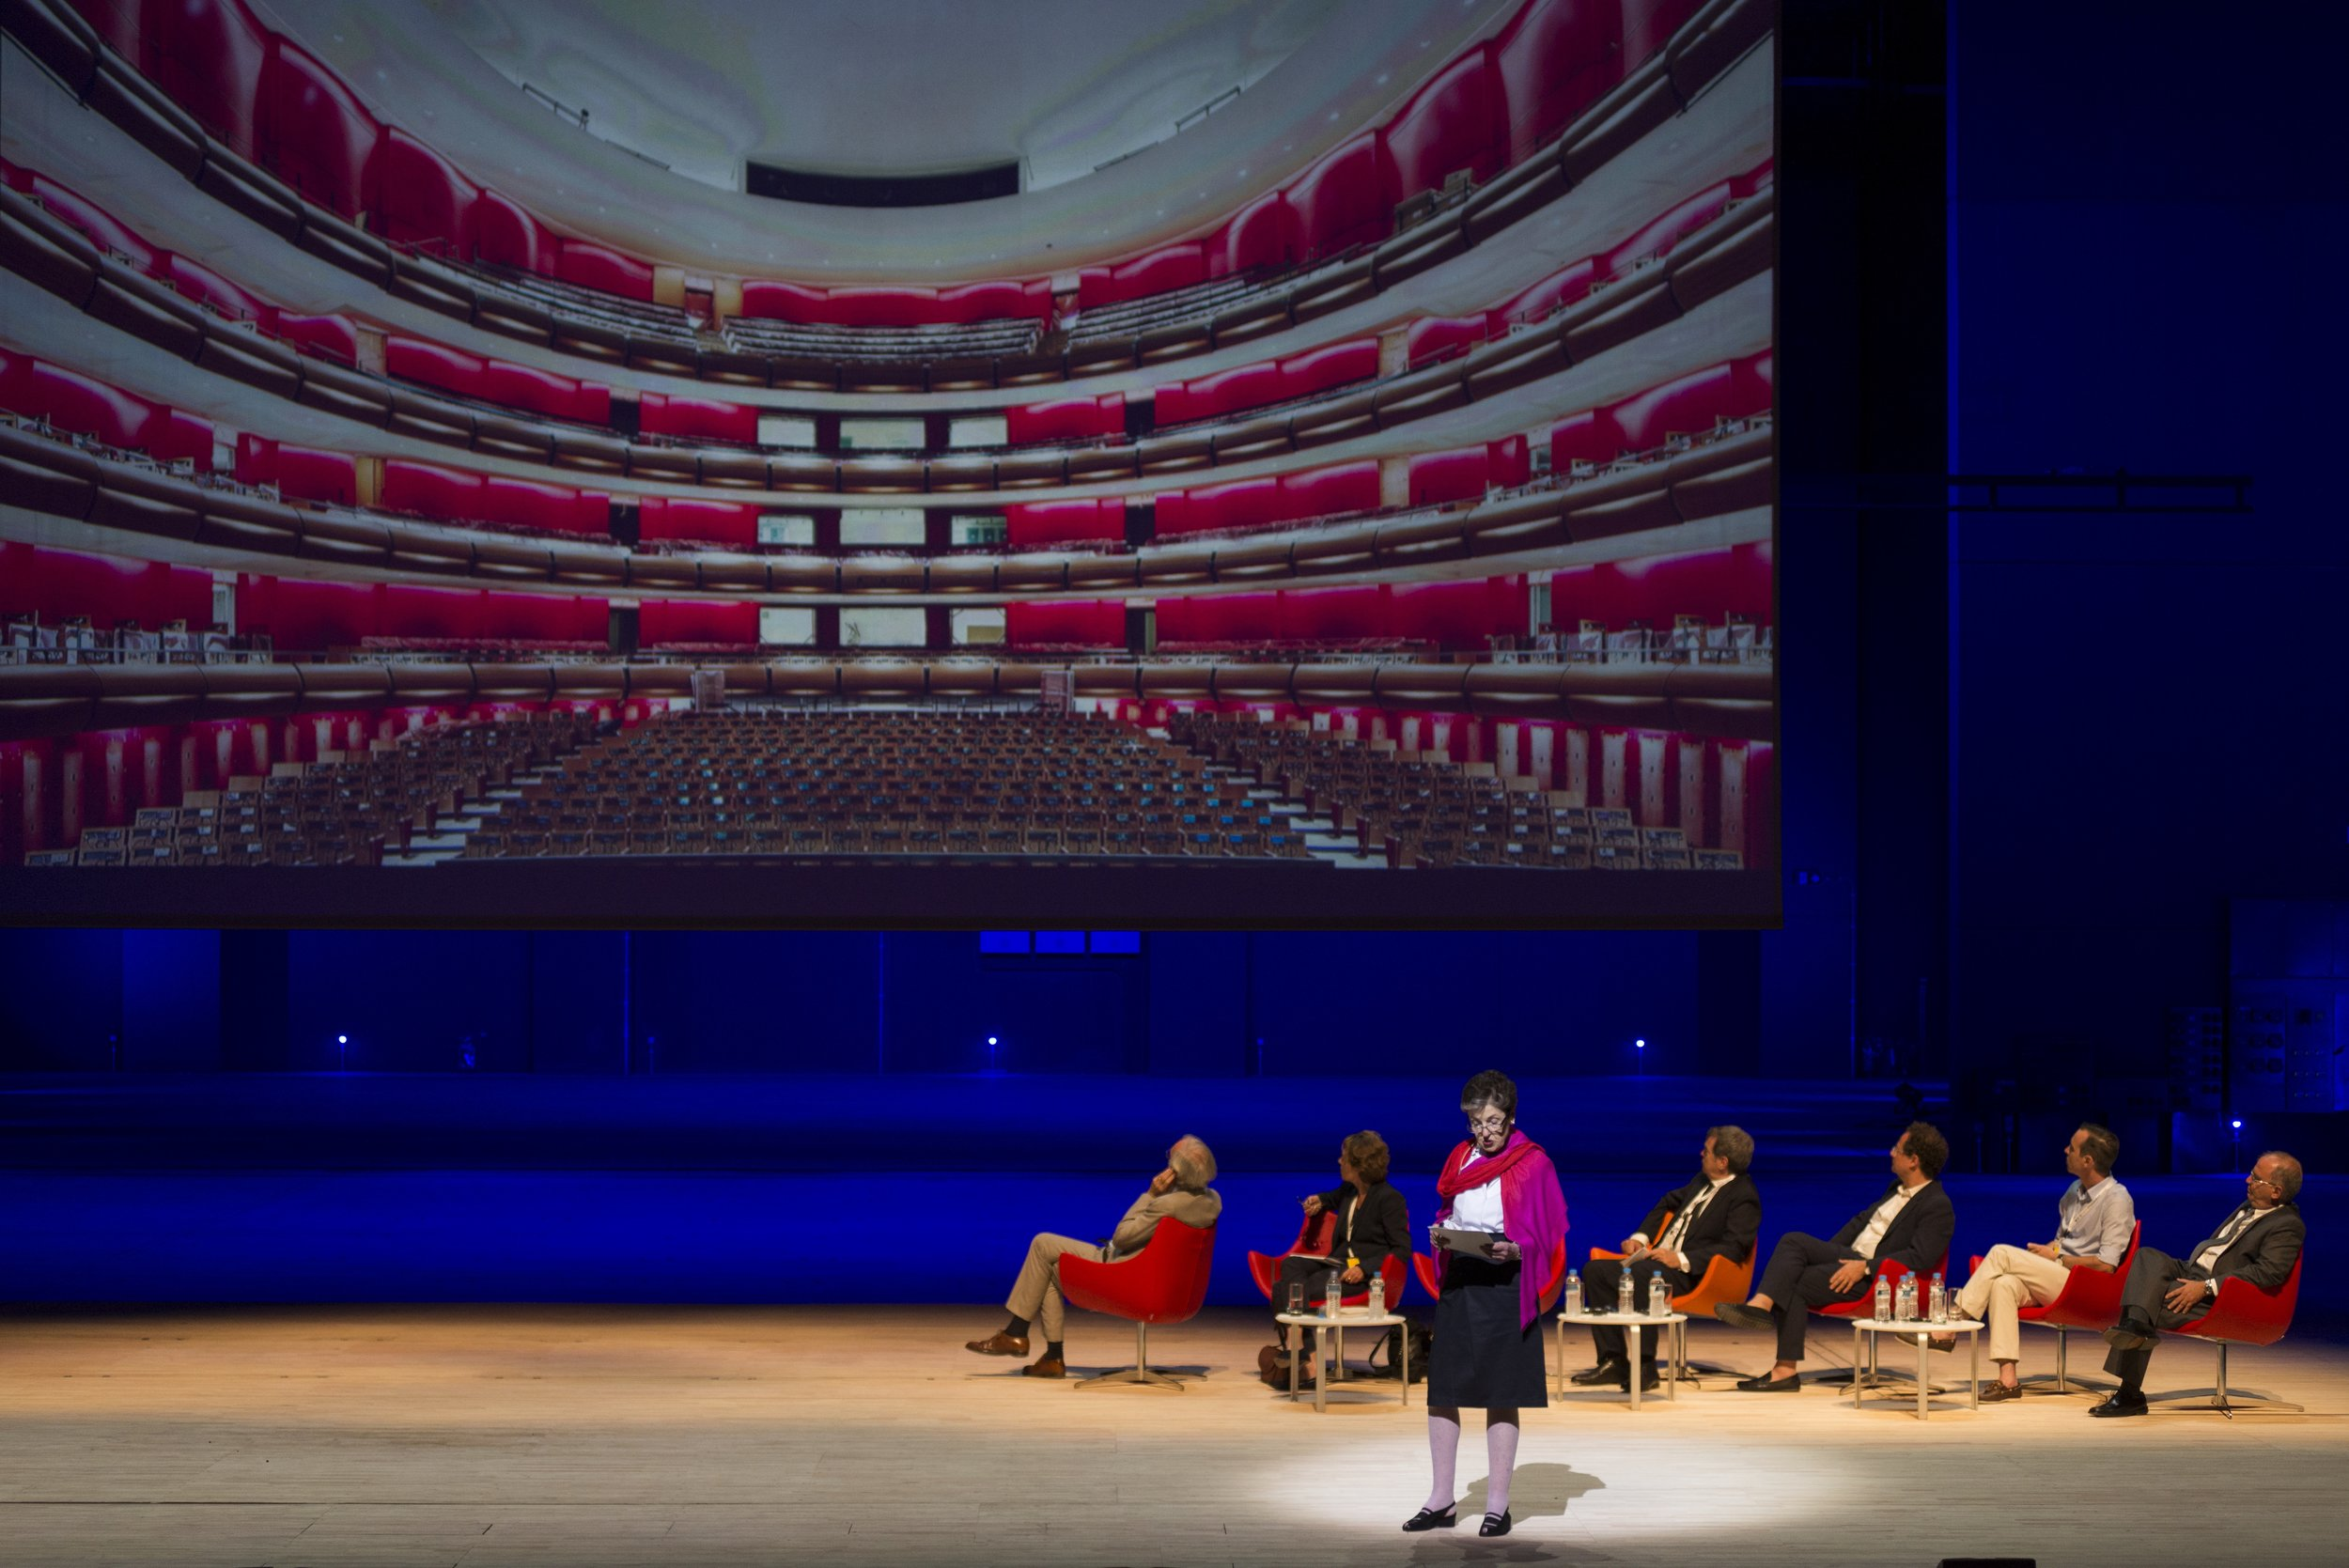 Newhouse presenting on her book  Chaos and Culture  at the Stavros Niarchos Foundation Cultural Center (SNFCC) in Athens, Greece alongside Renzo Piano, Annabelle Selldorf, Adam Weinberg, Yiorgis Yerolymbos, John Peponis, and Andreas Kourkoulas. Courtesy of the Stavros Niarchos Foundation.